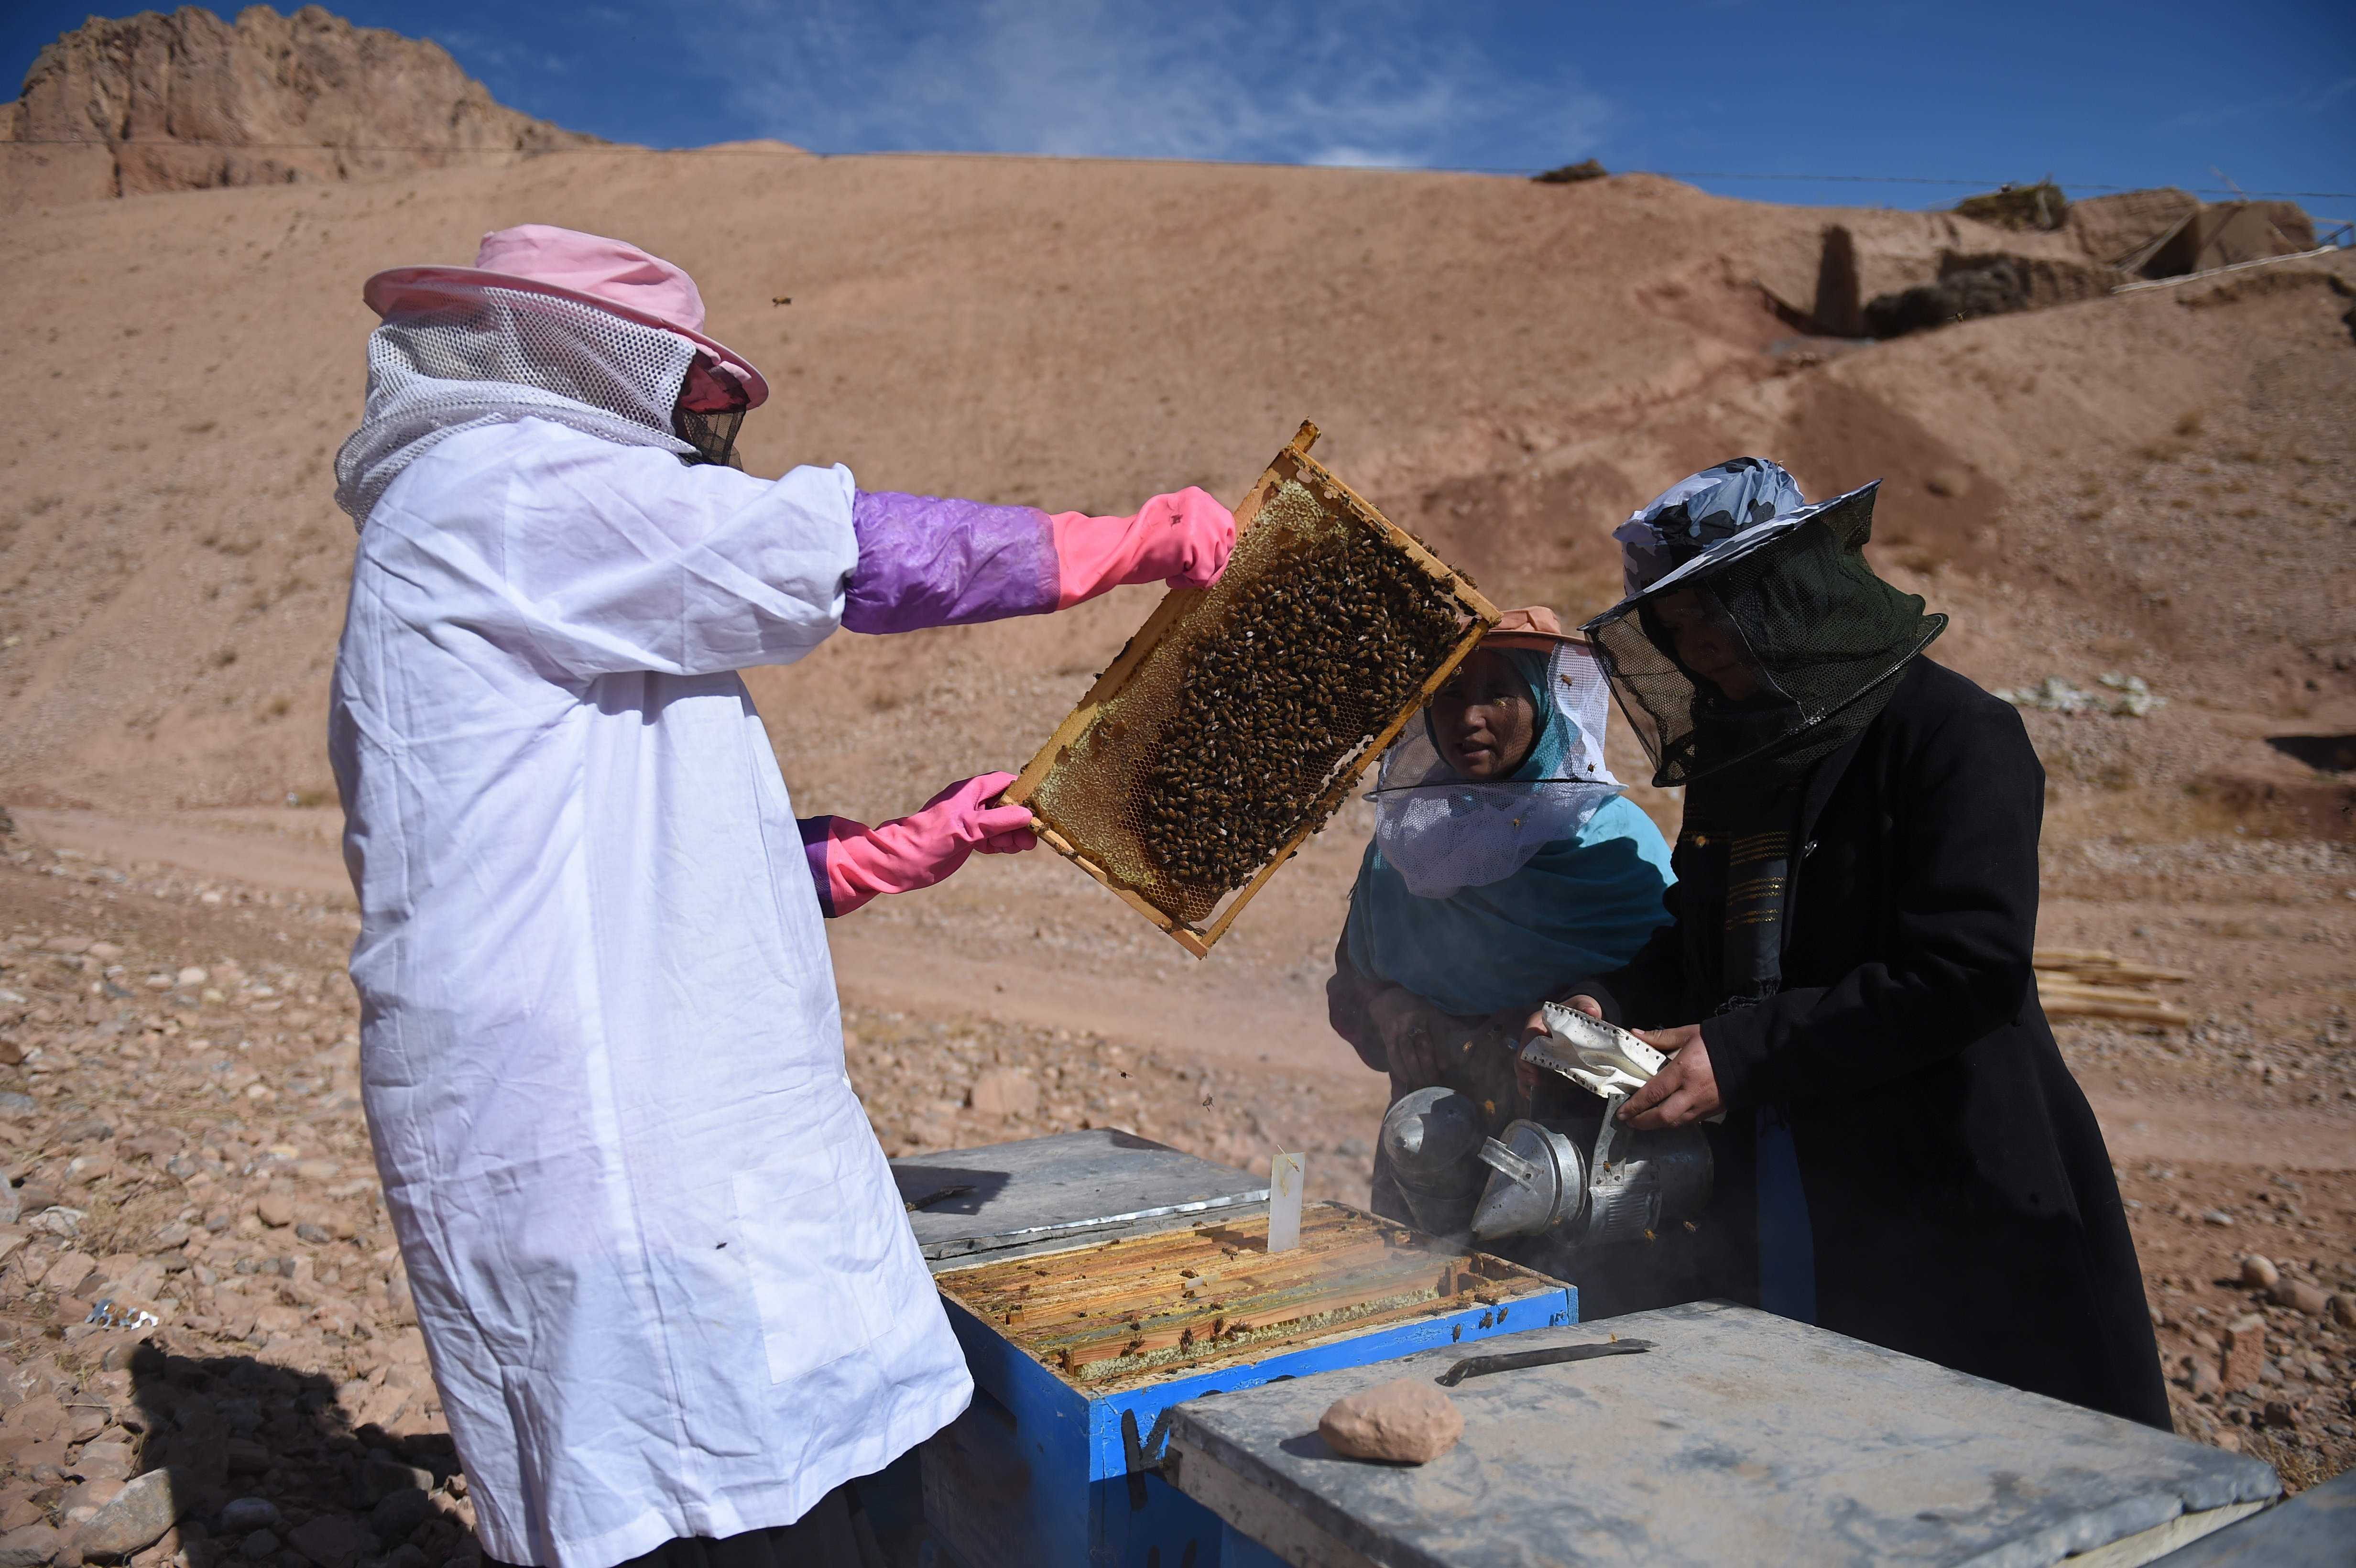 Honey business allows Afghan women more freedom, respect